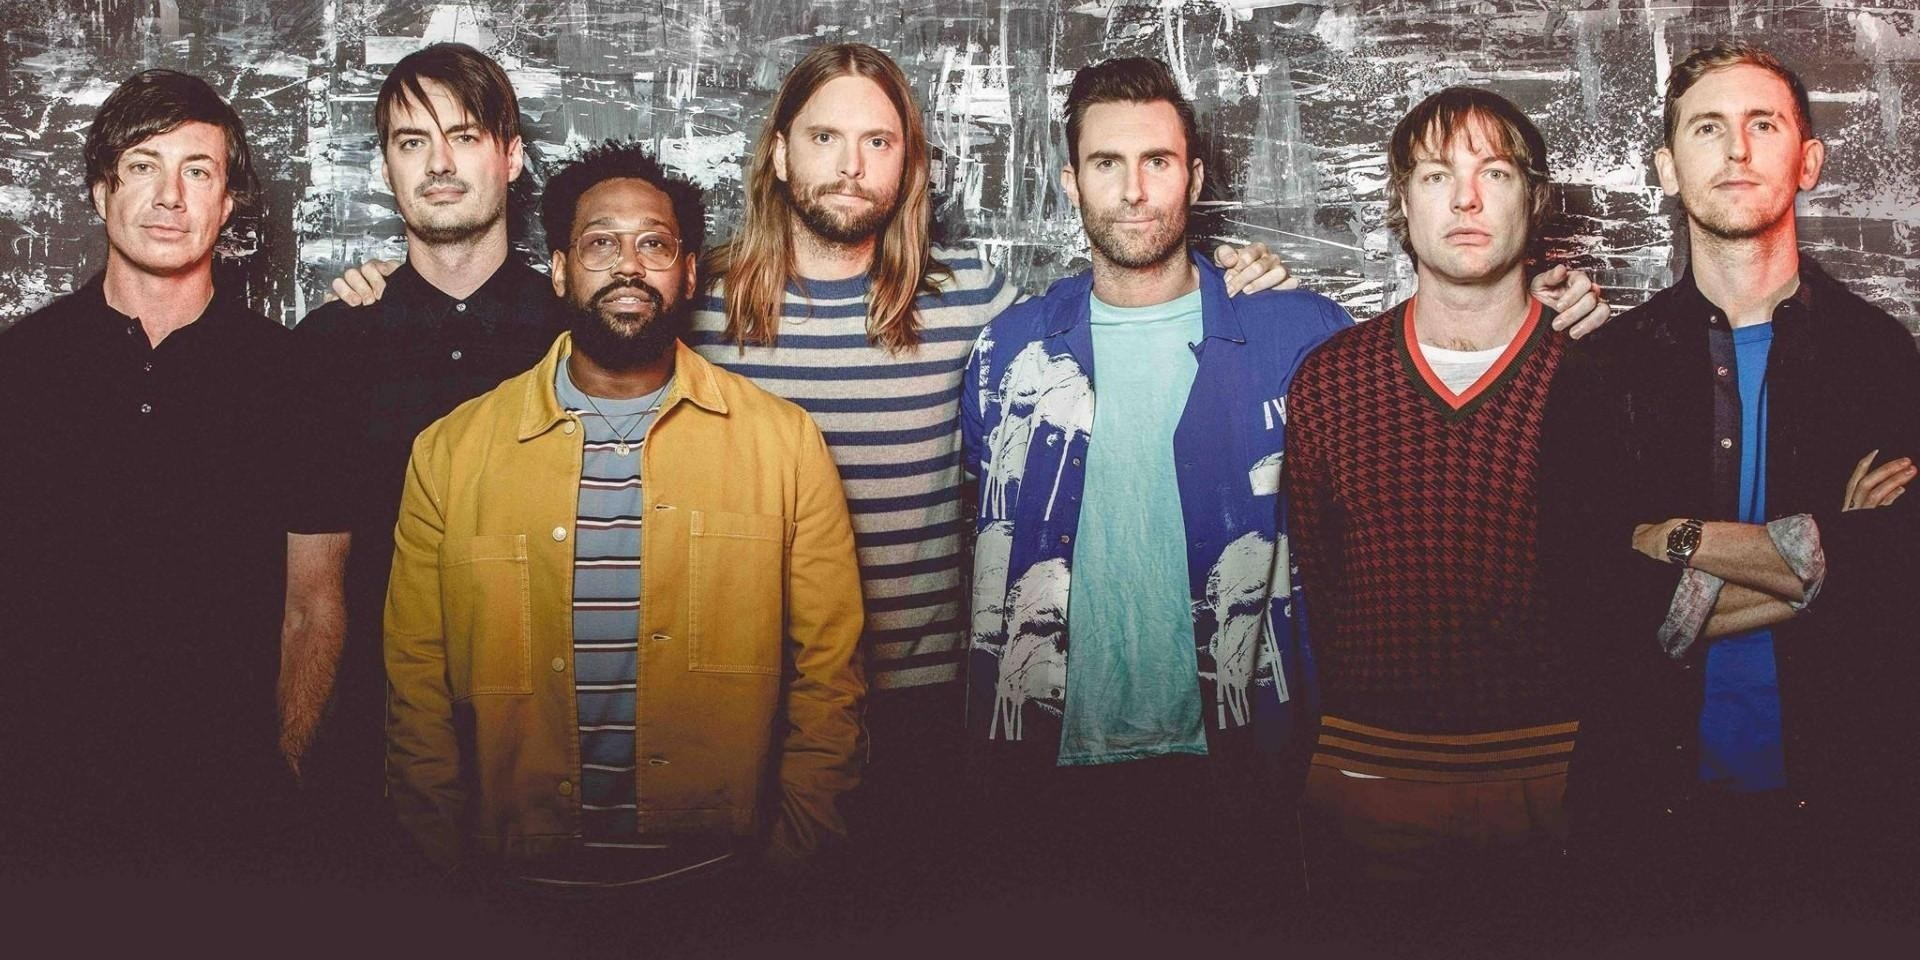 Ticketing info for Maroon 5's #REDPILLBLUES show in Singapore released